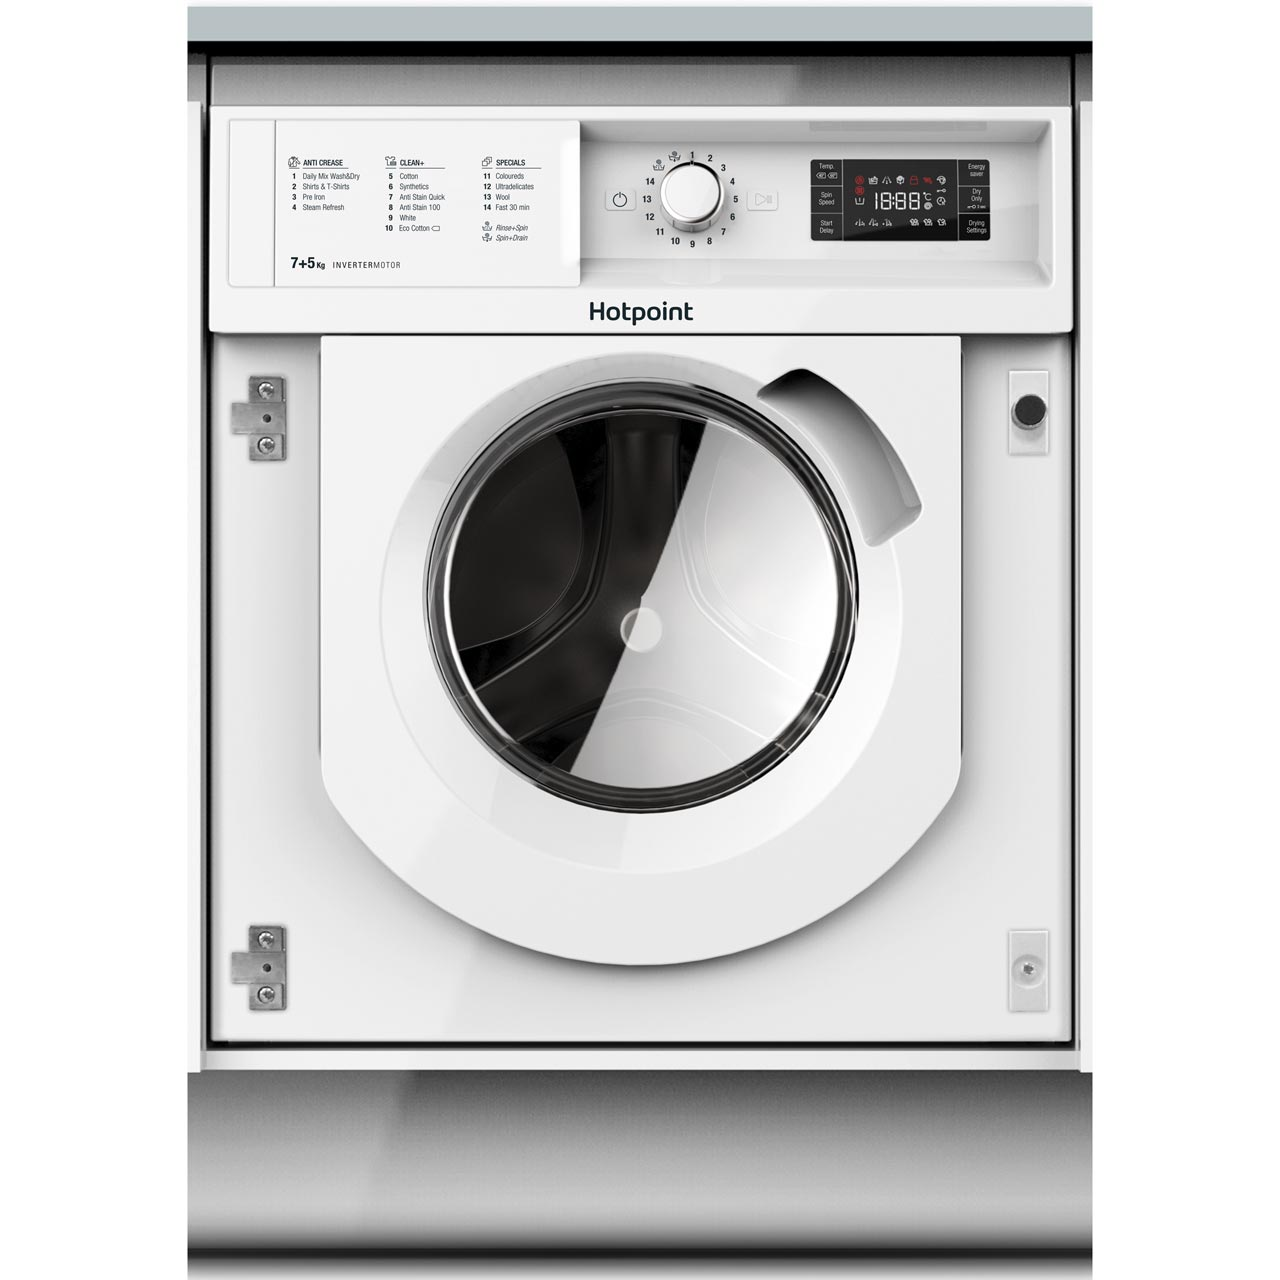 Hotpoint Biwdhg7148 Built In Washer Dryer White